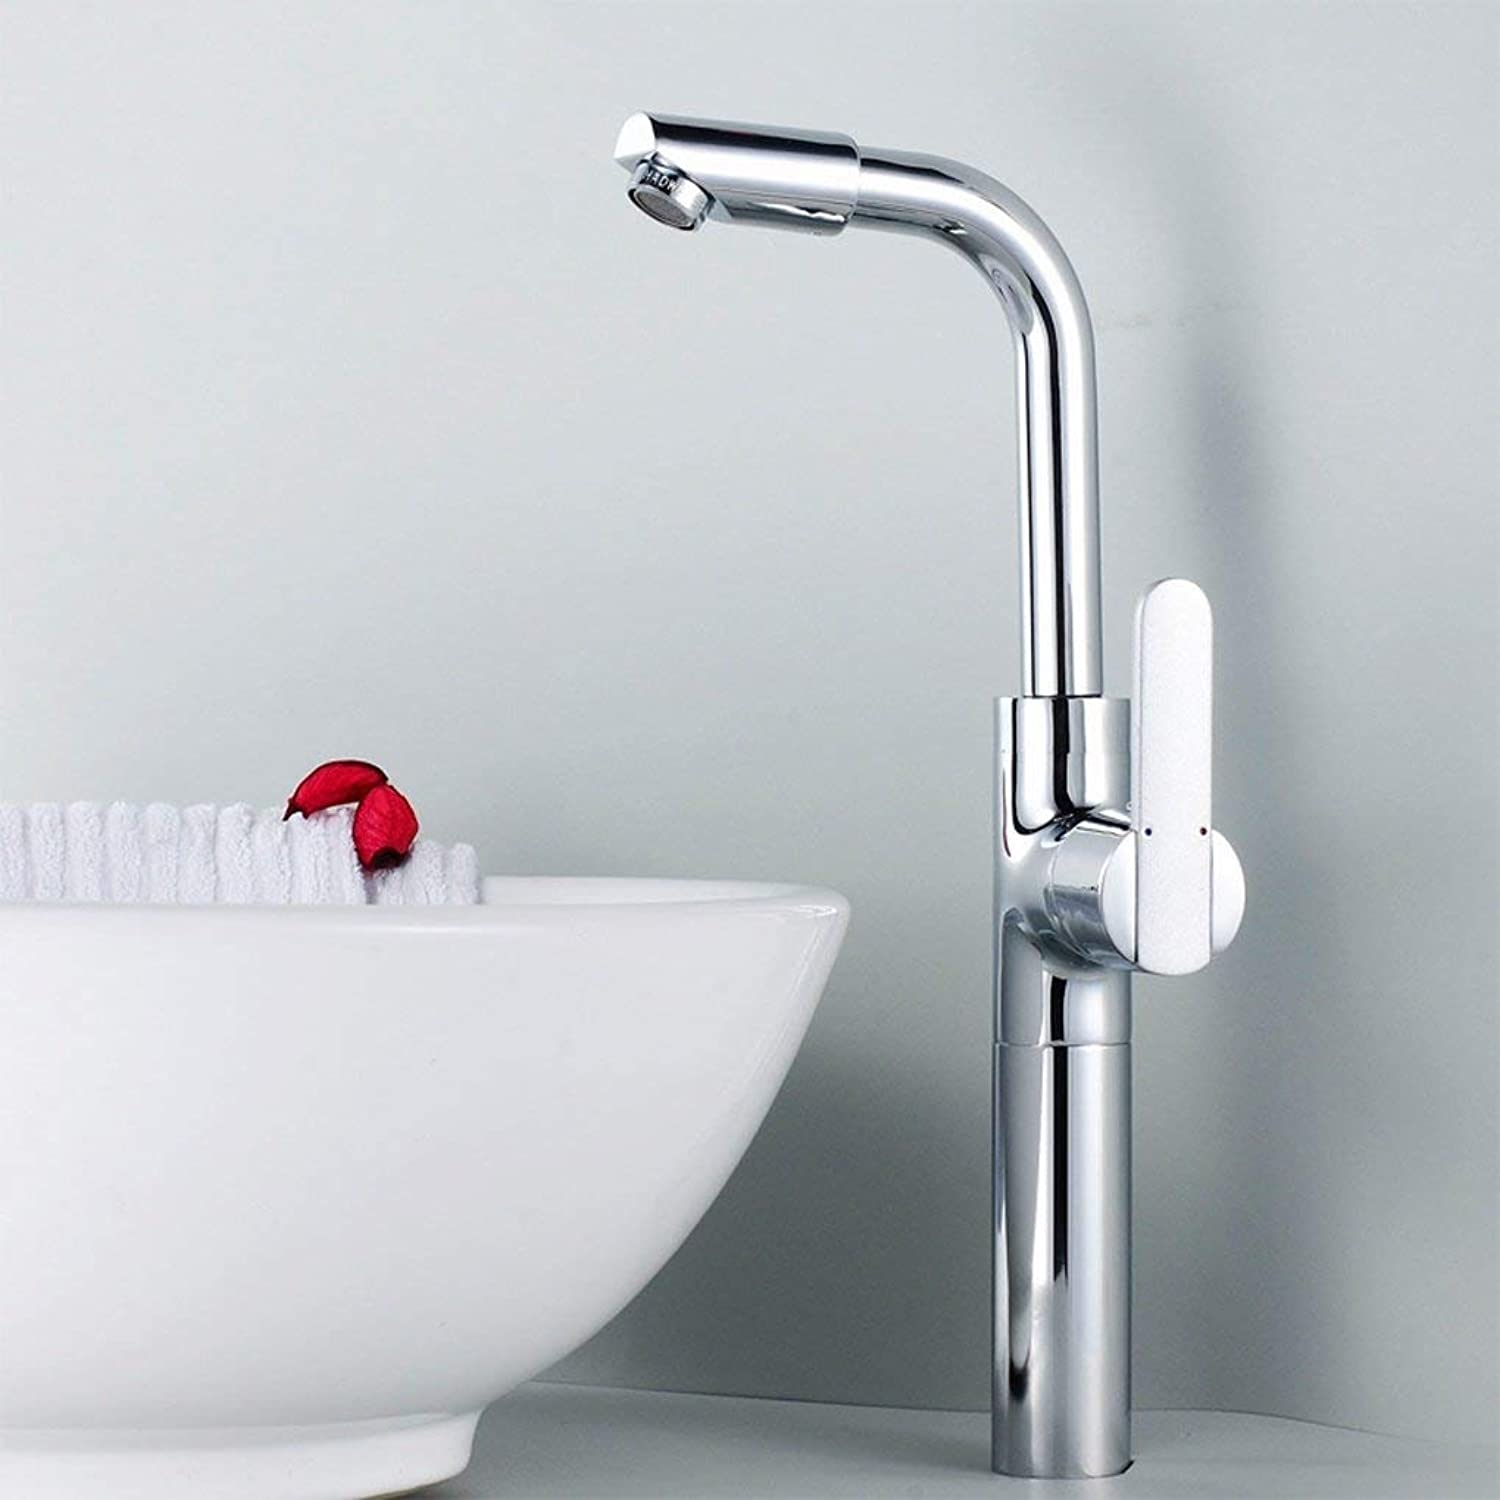 FEI Full Copper on the Table Pots Faucet Basin Faucet Hot and Cold Wash Basin Faucet